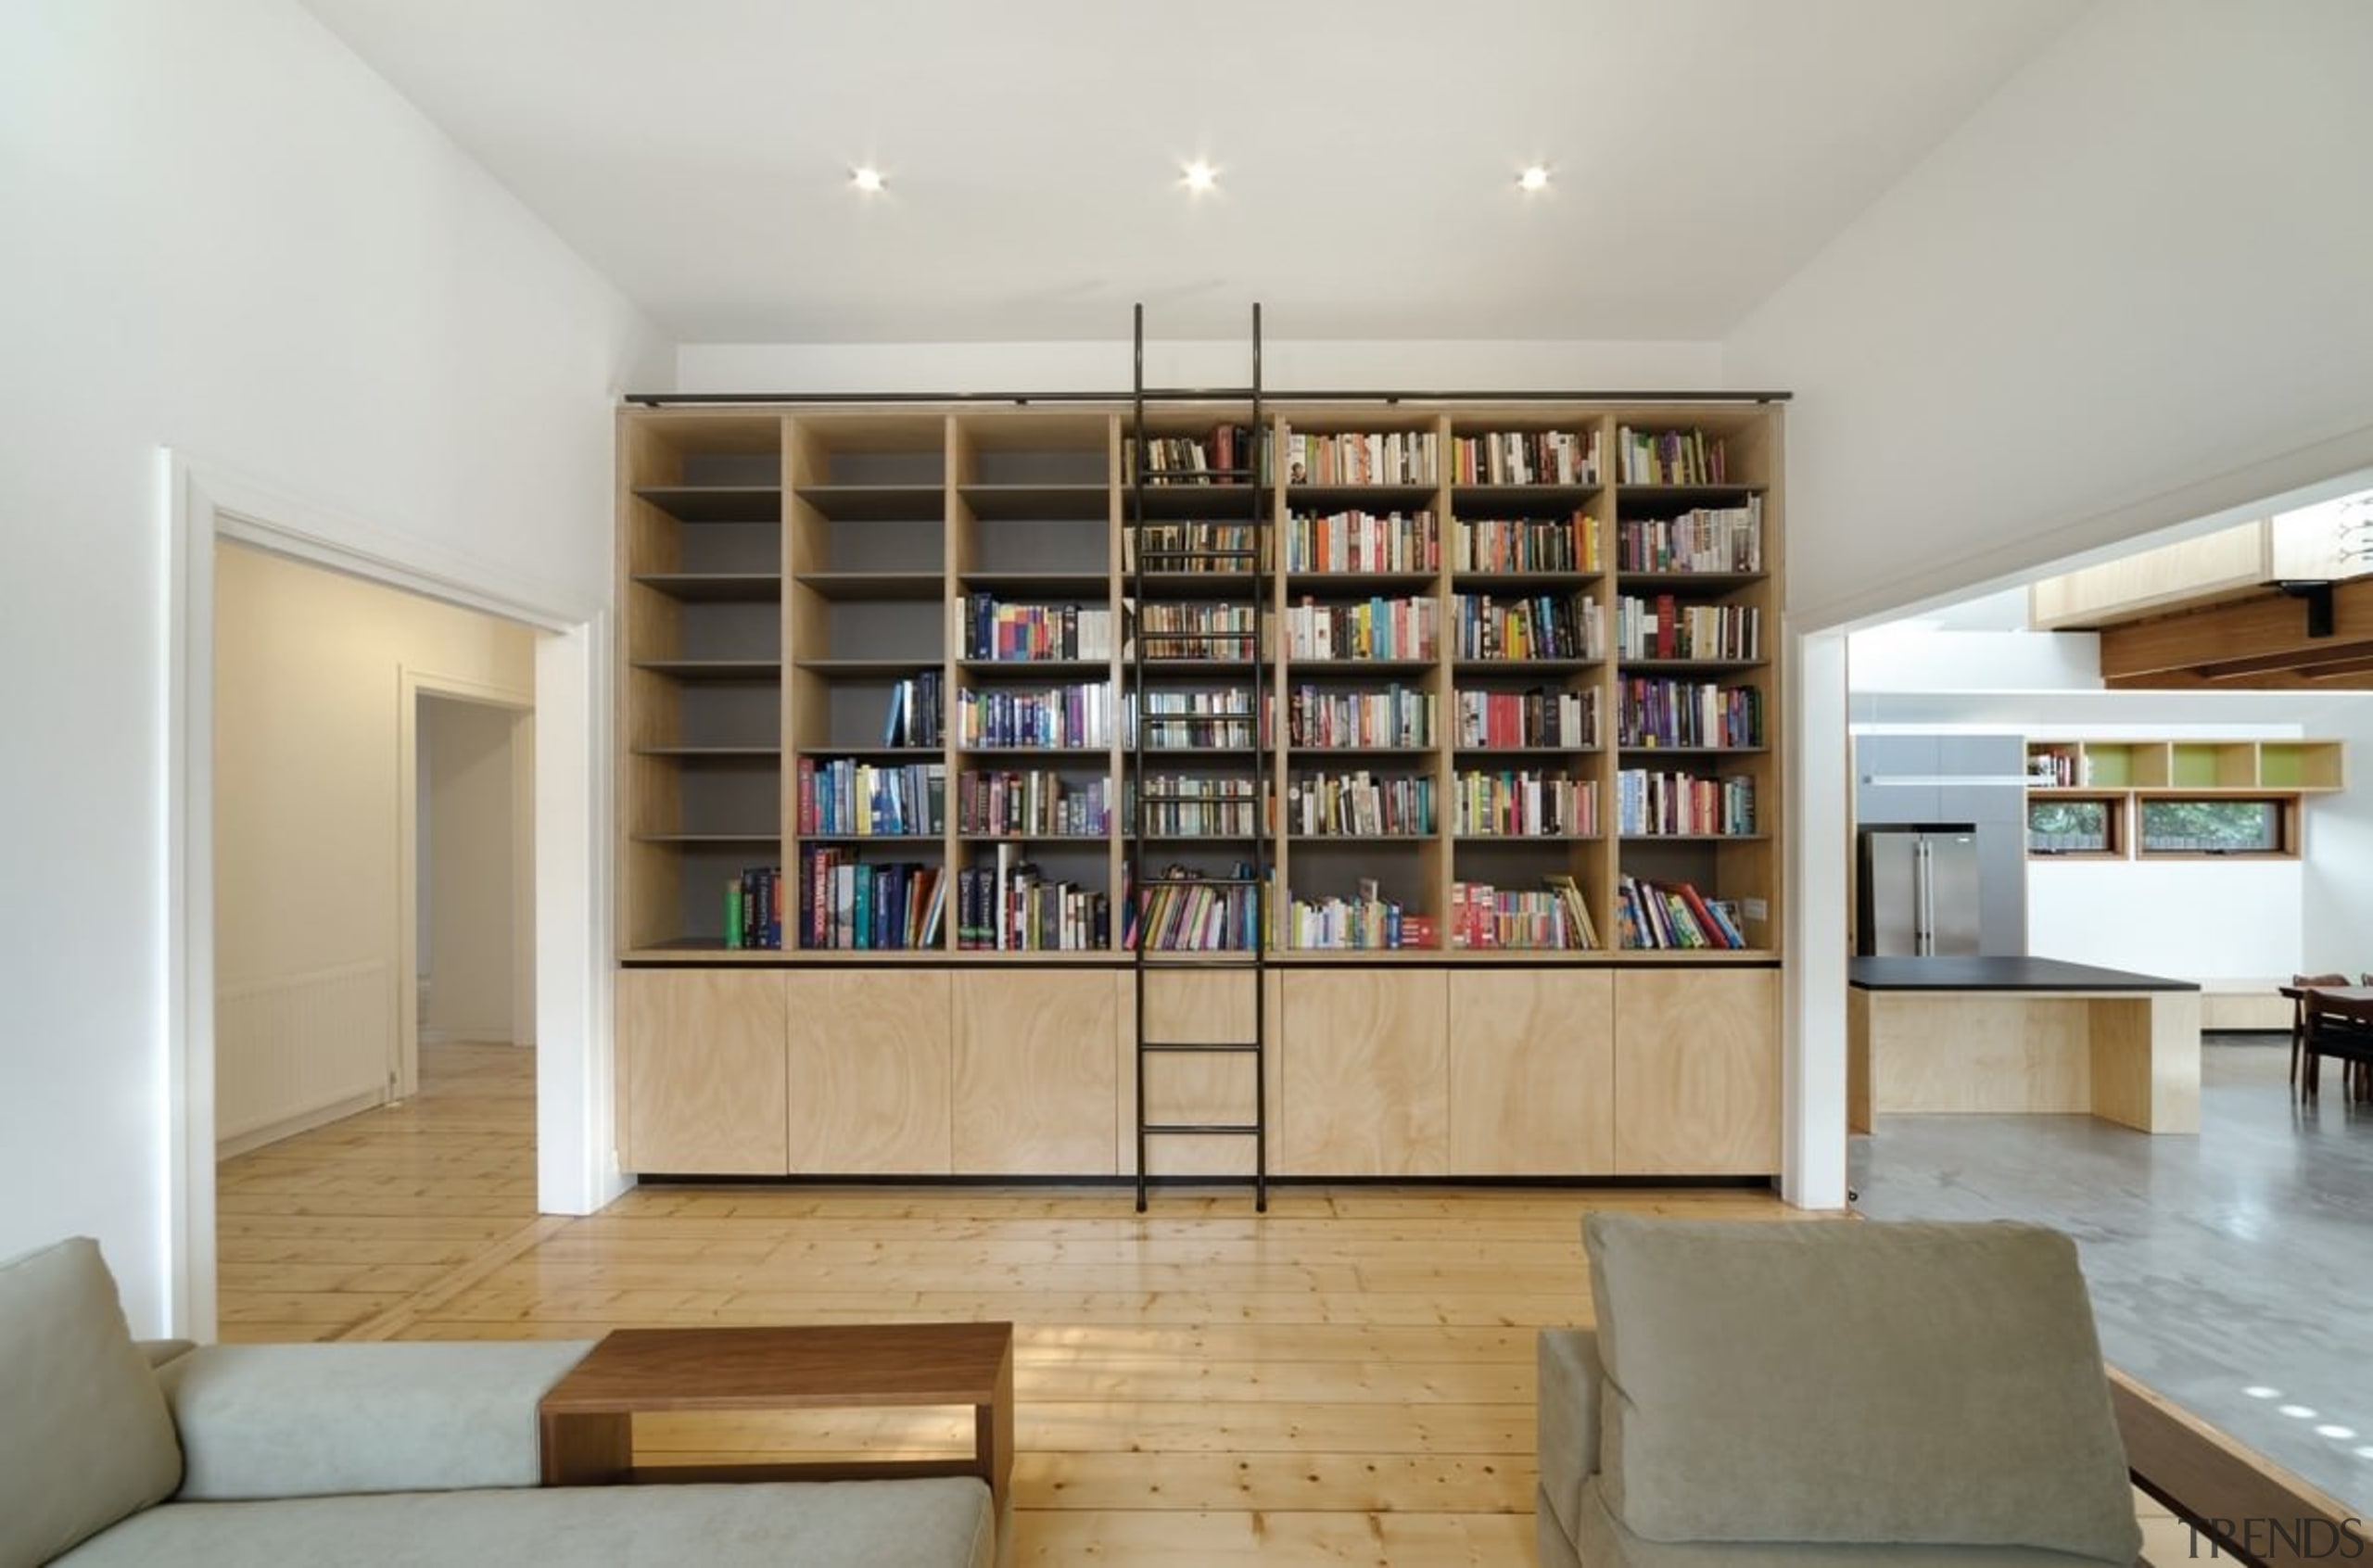 A Large Bookshelf Separates The Hallway And Living Area